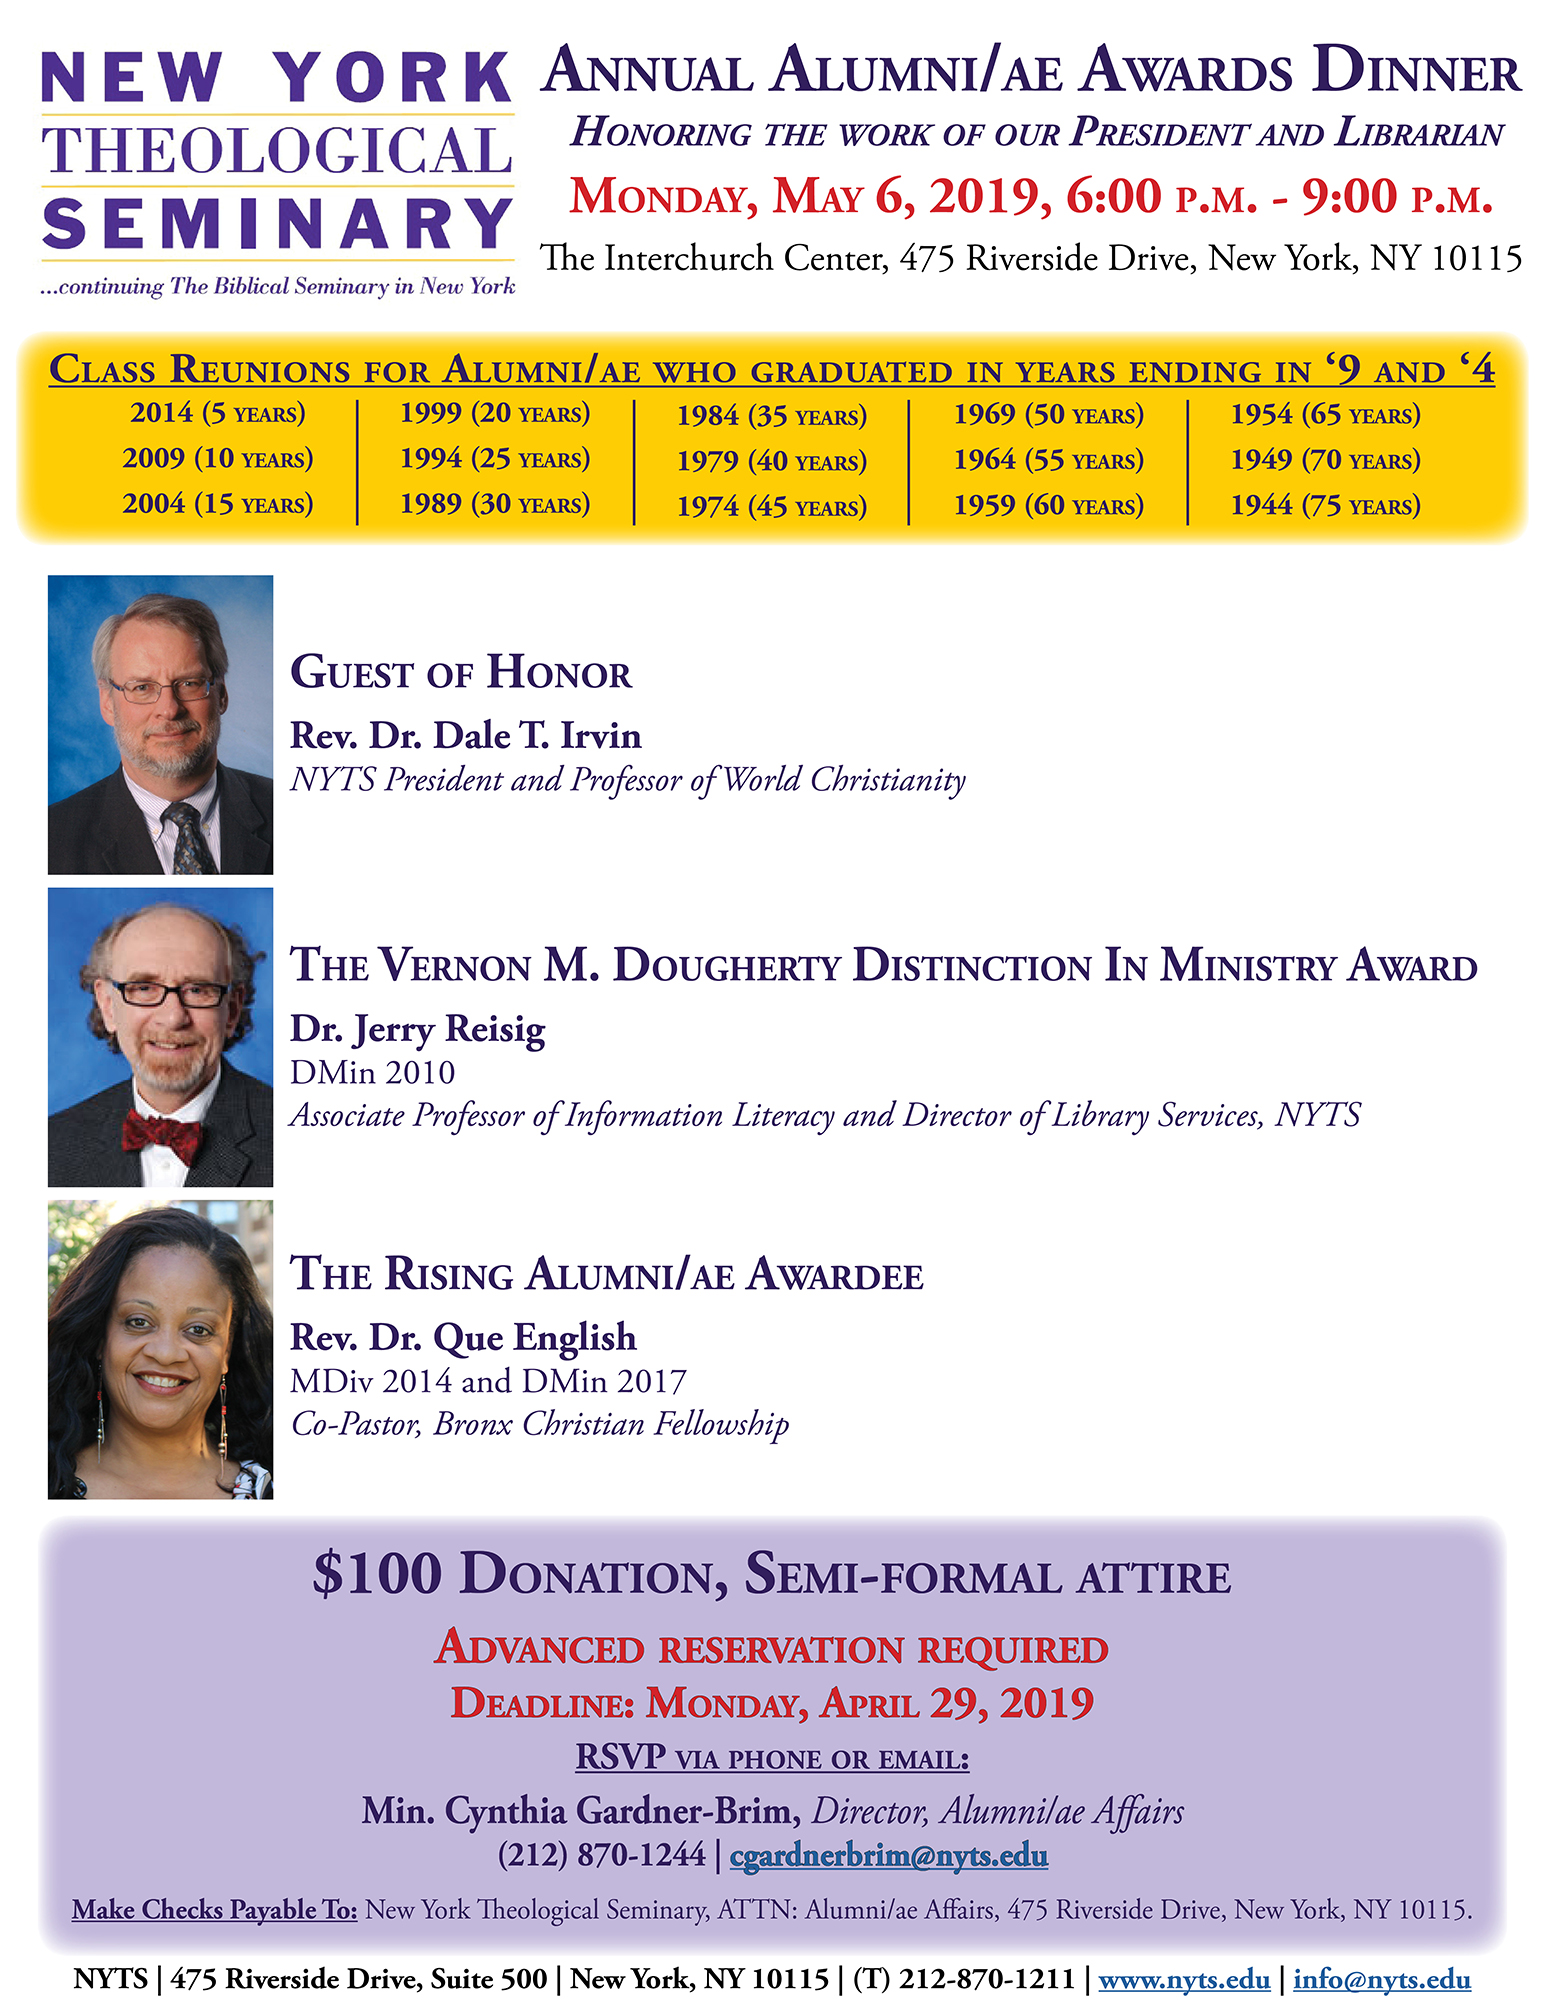 2019 NYTS Alumniae Awards Dinner Flyer